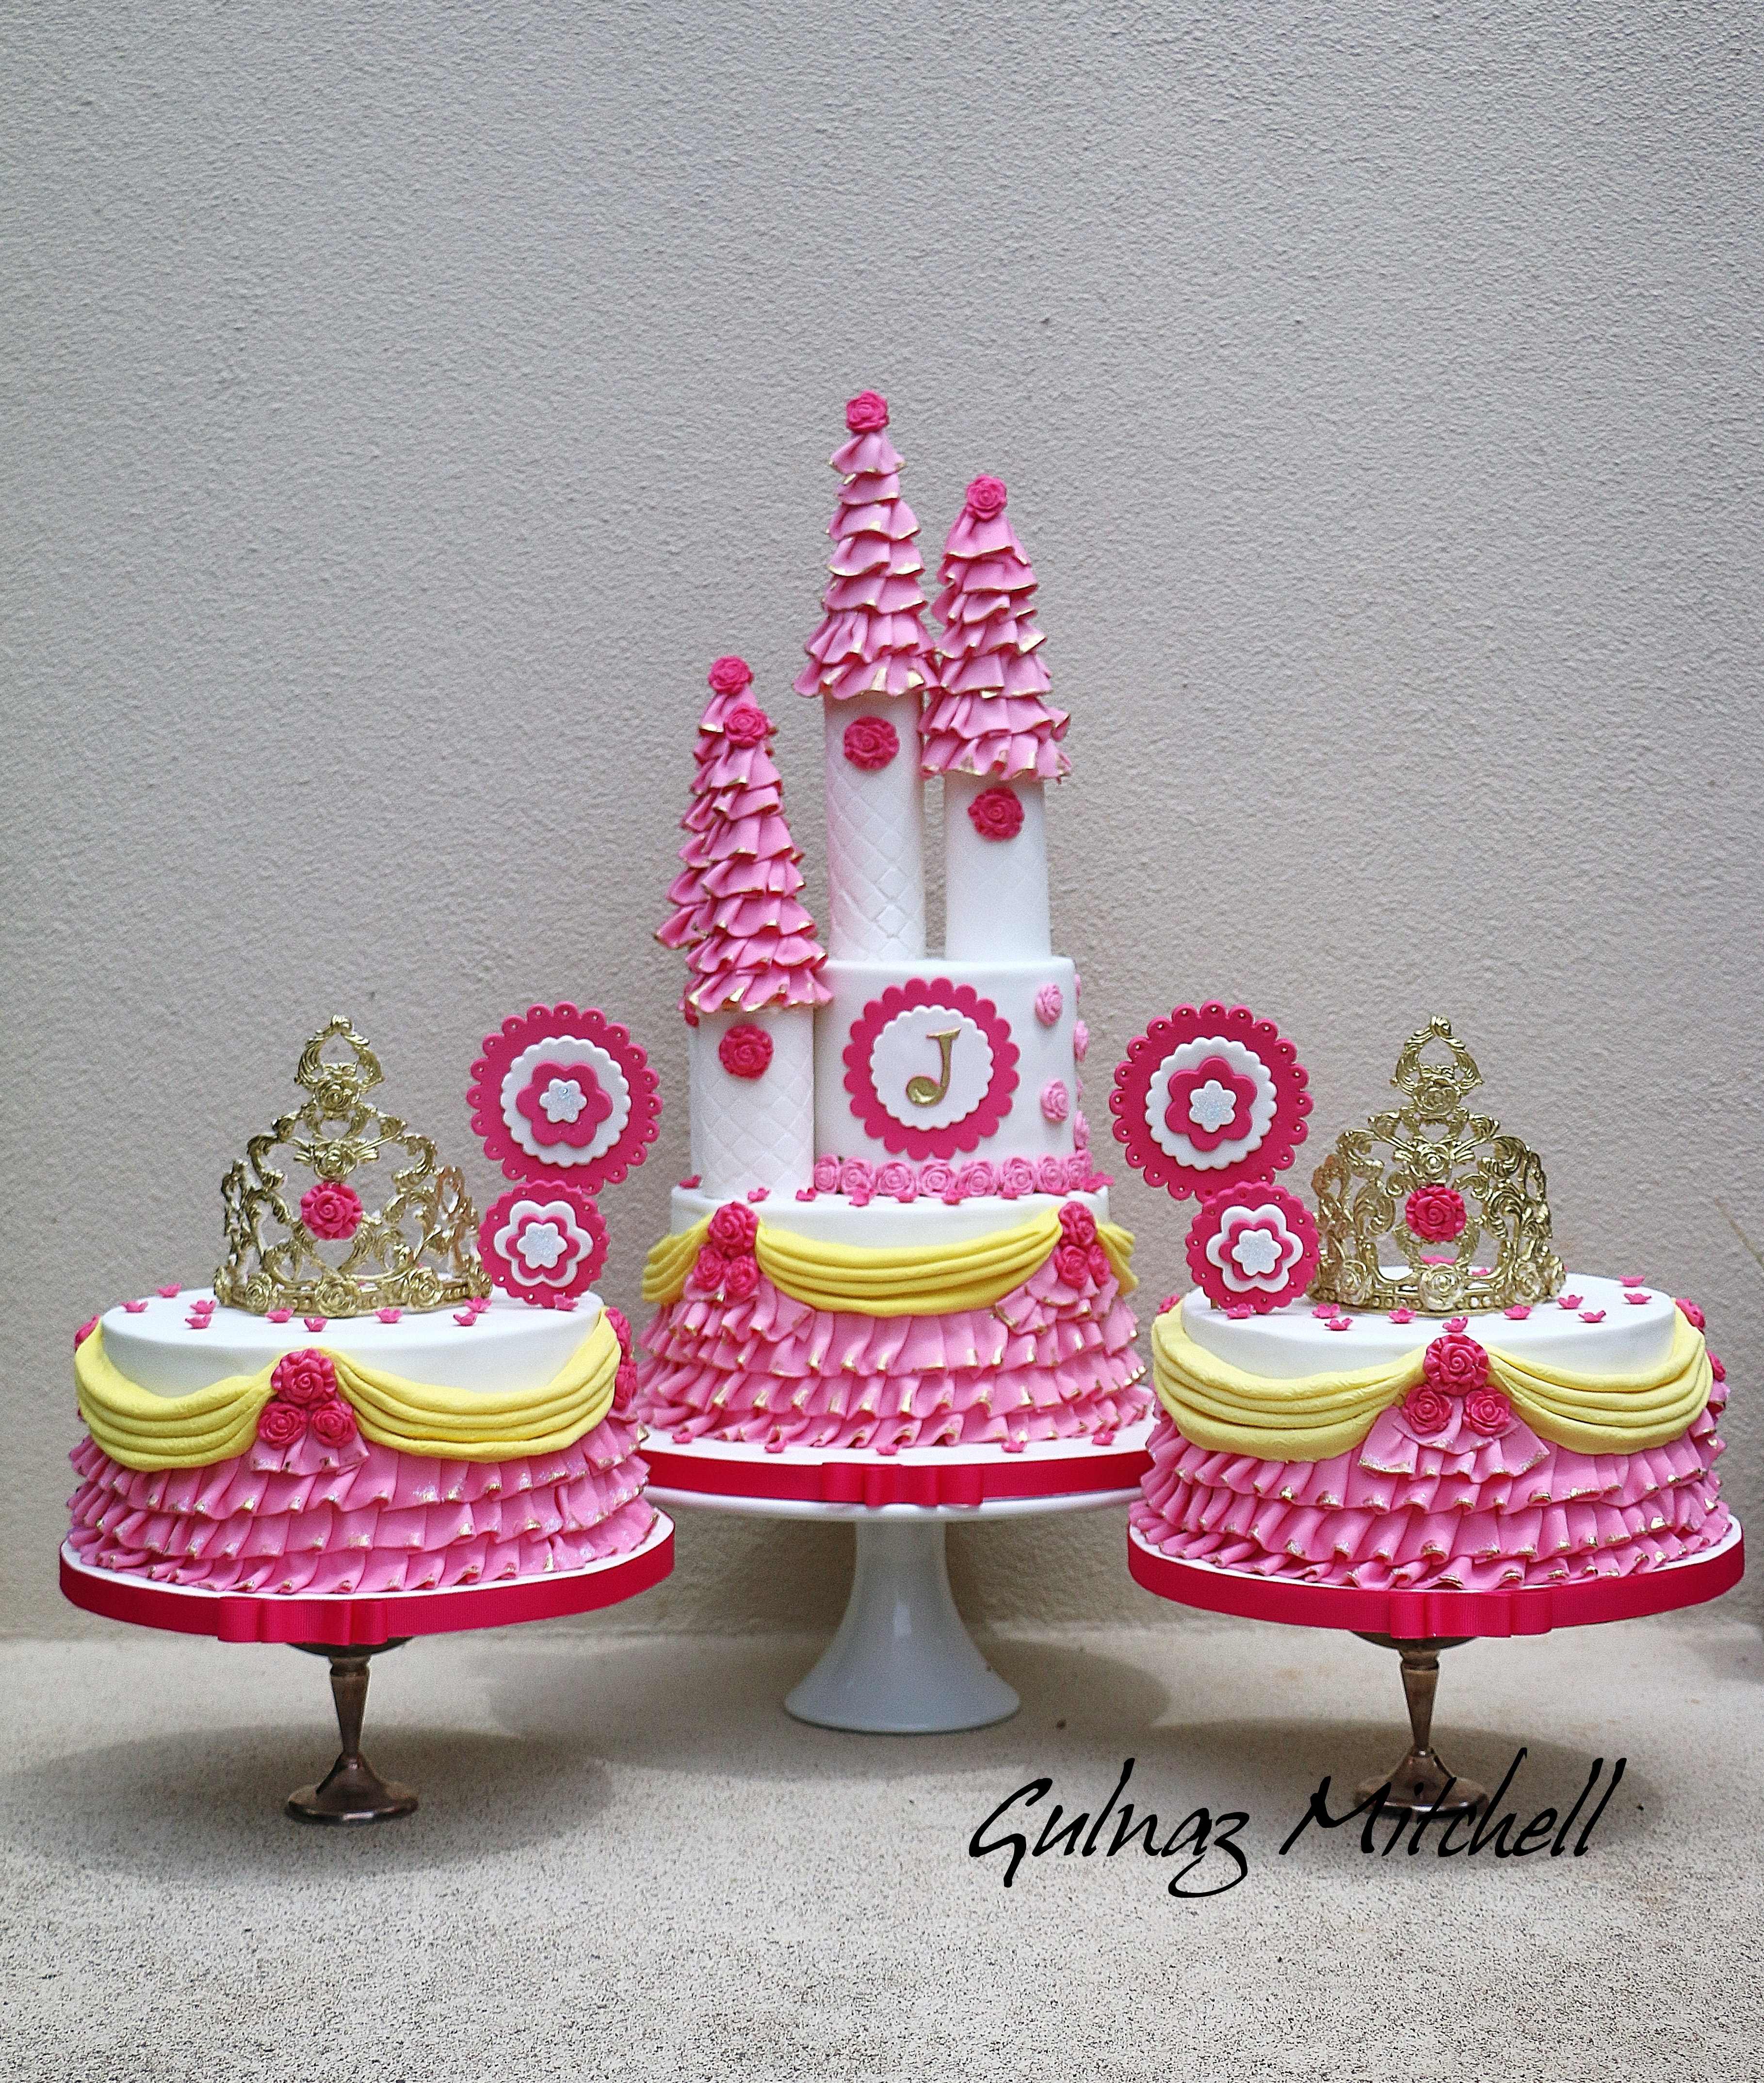 Gulnaz-Mitchell-Heavenlycakes4you-by-Gulnaz-Michell-Birthday-Baby- & Fit For a Princess - Satin Ice